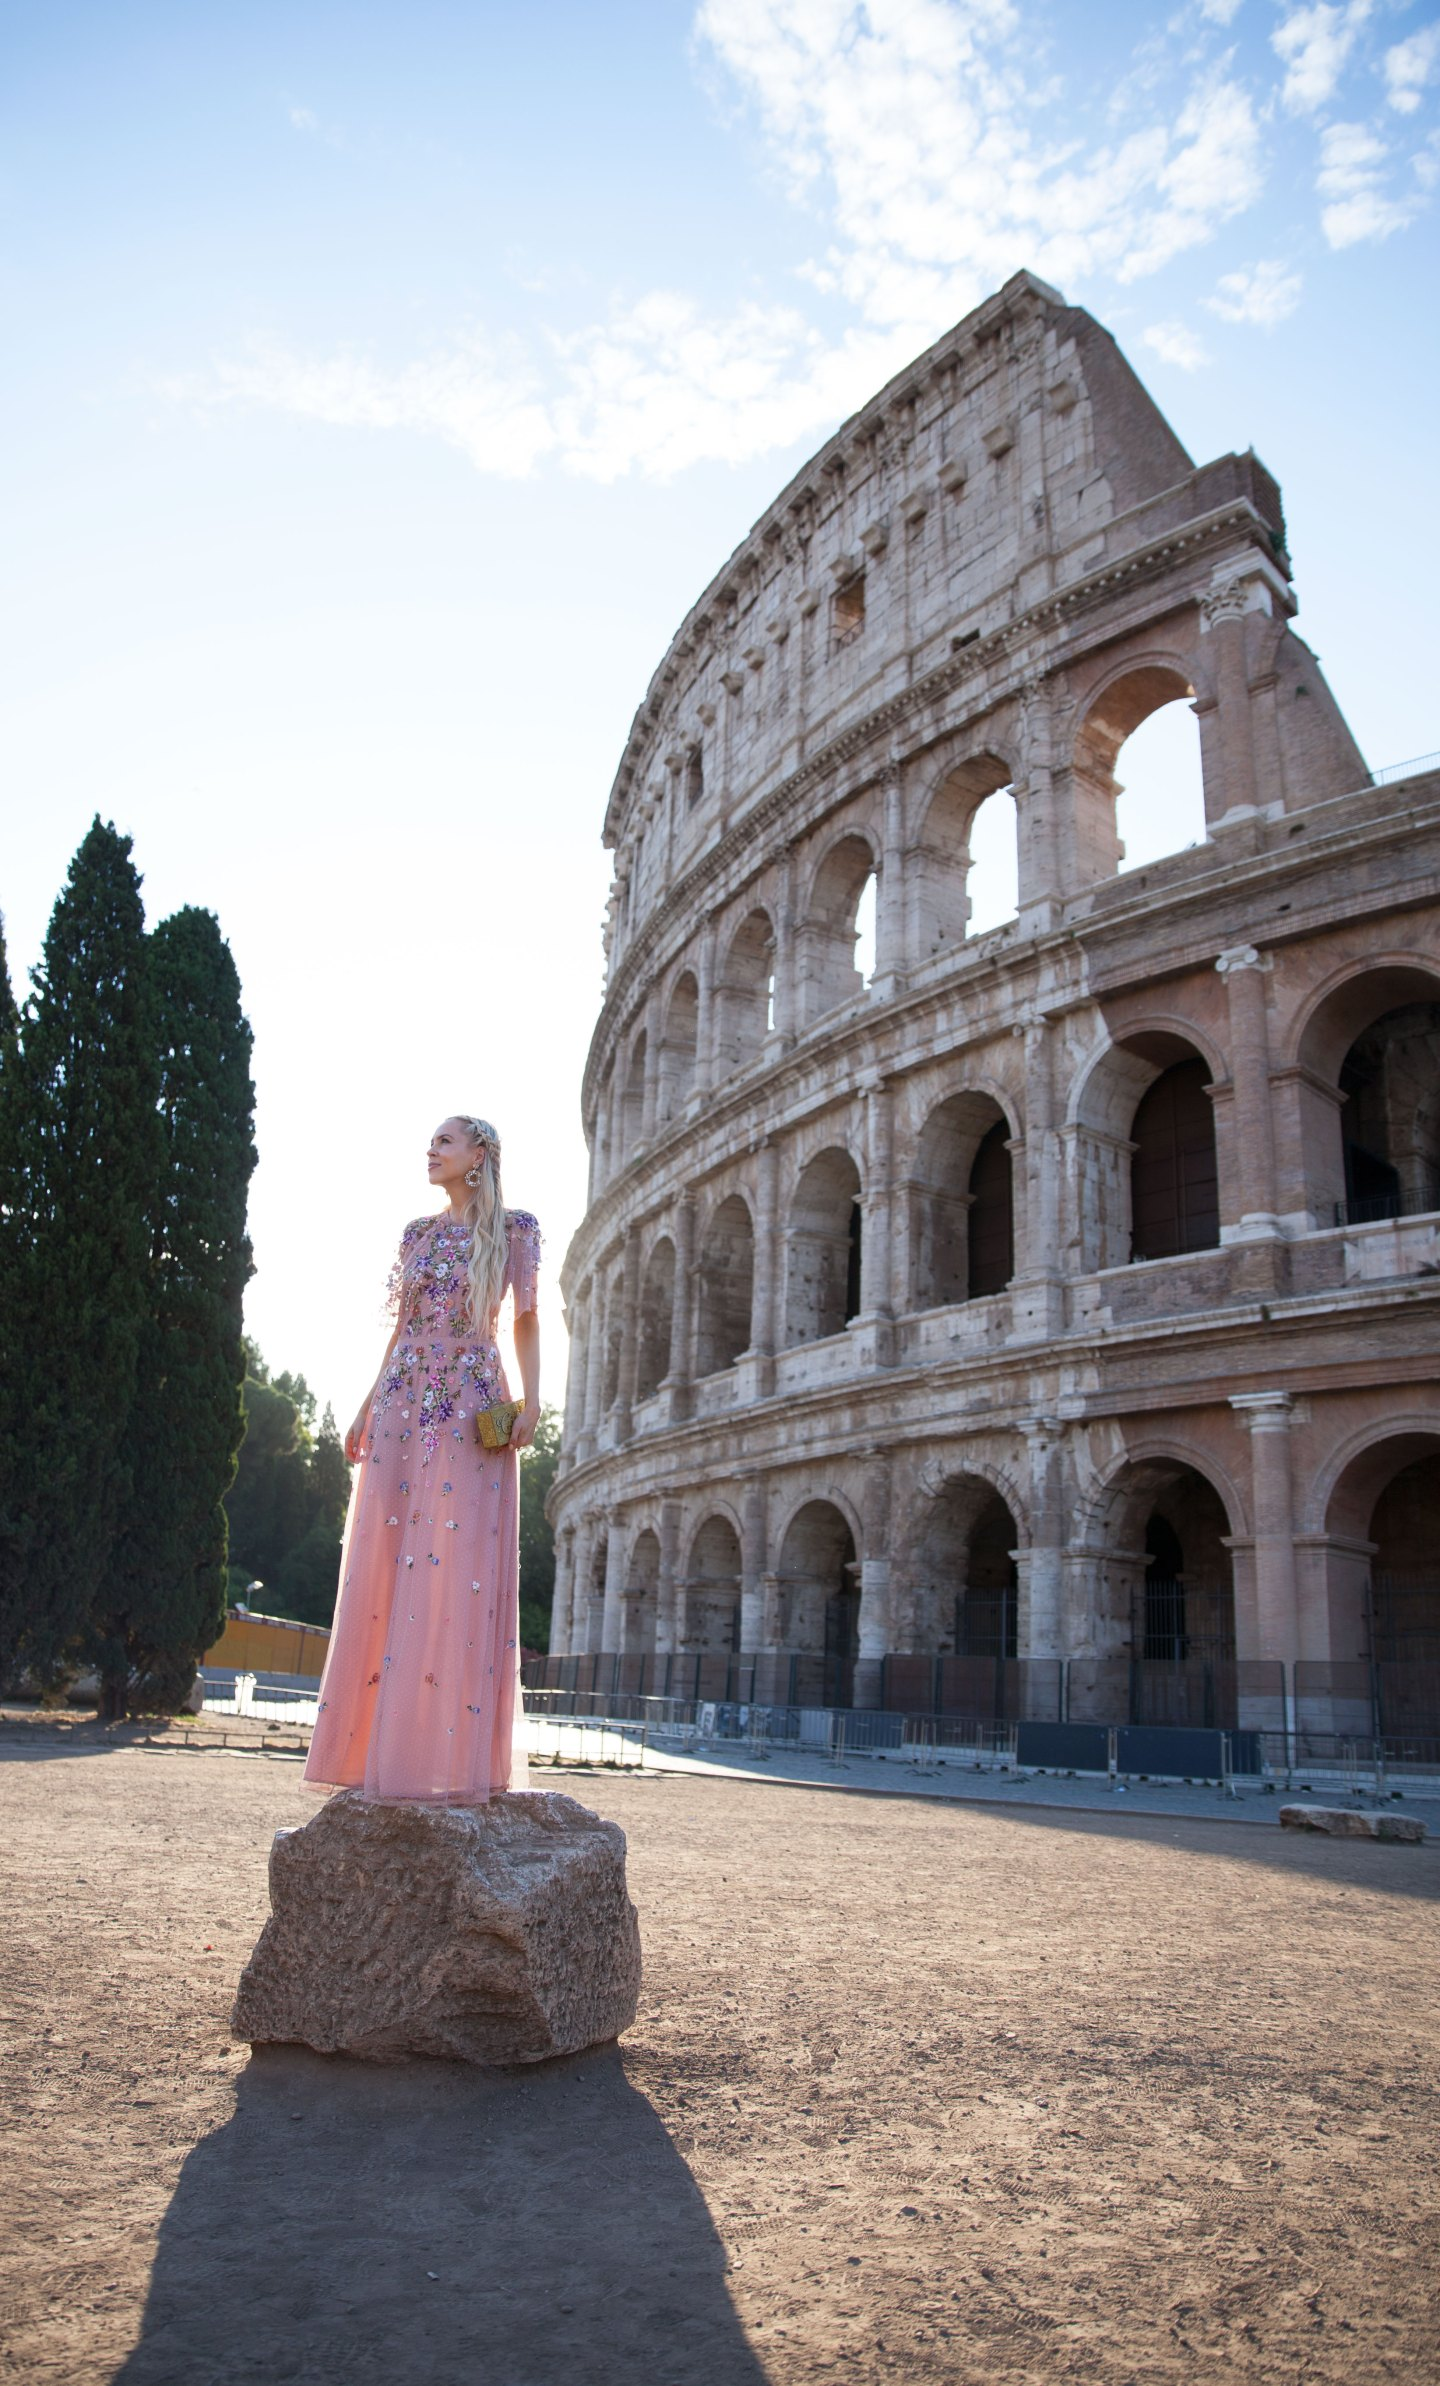 ASOS DESIGN Bridesmaid floral embroidered dobby mesh flutter sleeve maxi dress in Rome  | ASOS floral embroidered maxi dress featured by top San Francisco fashion blog, Lombard and Fifth: image of a blonde woman wearing a floral maxi dress at the Colosseum in Rome